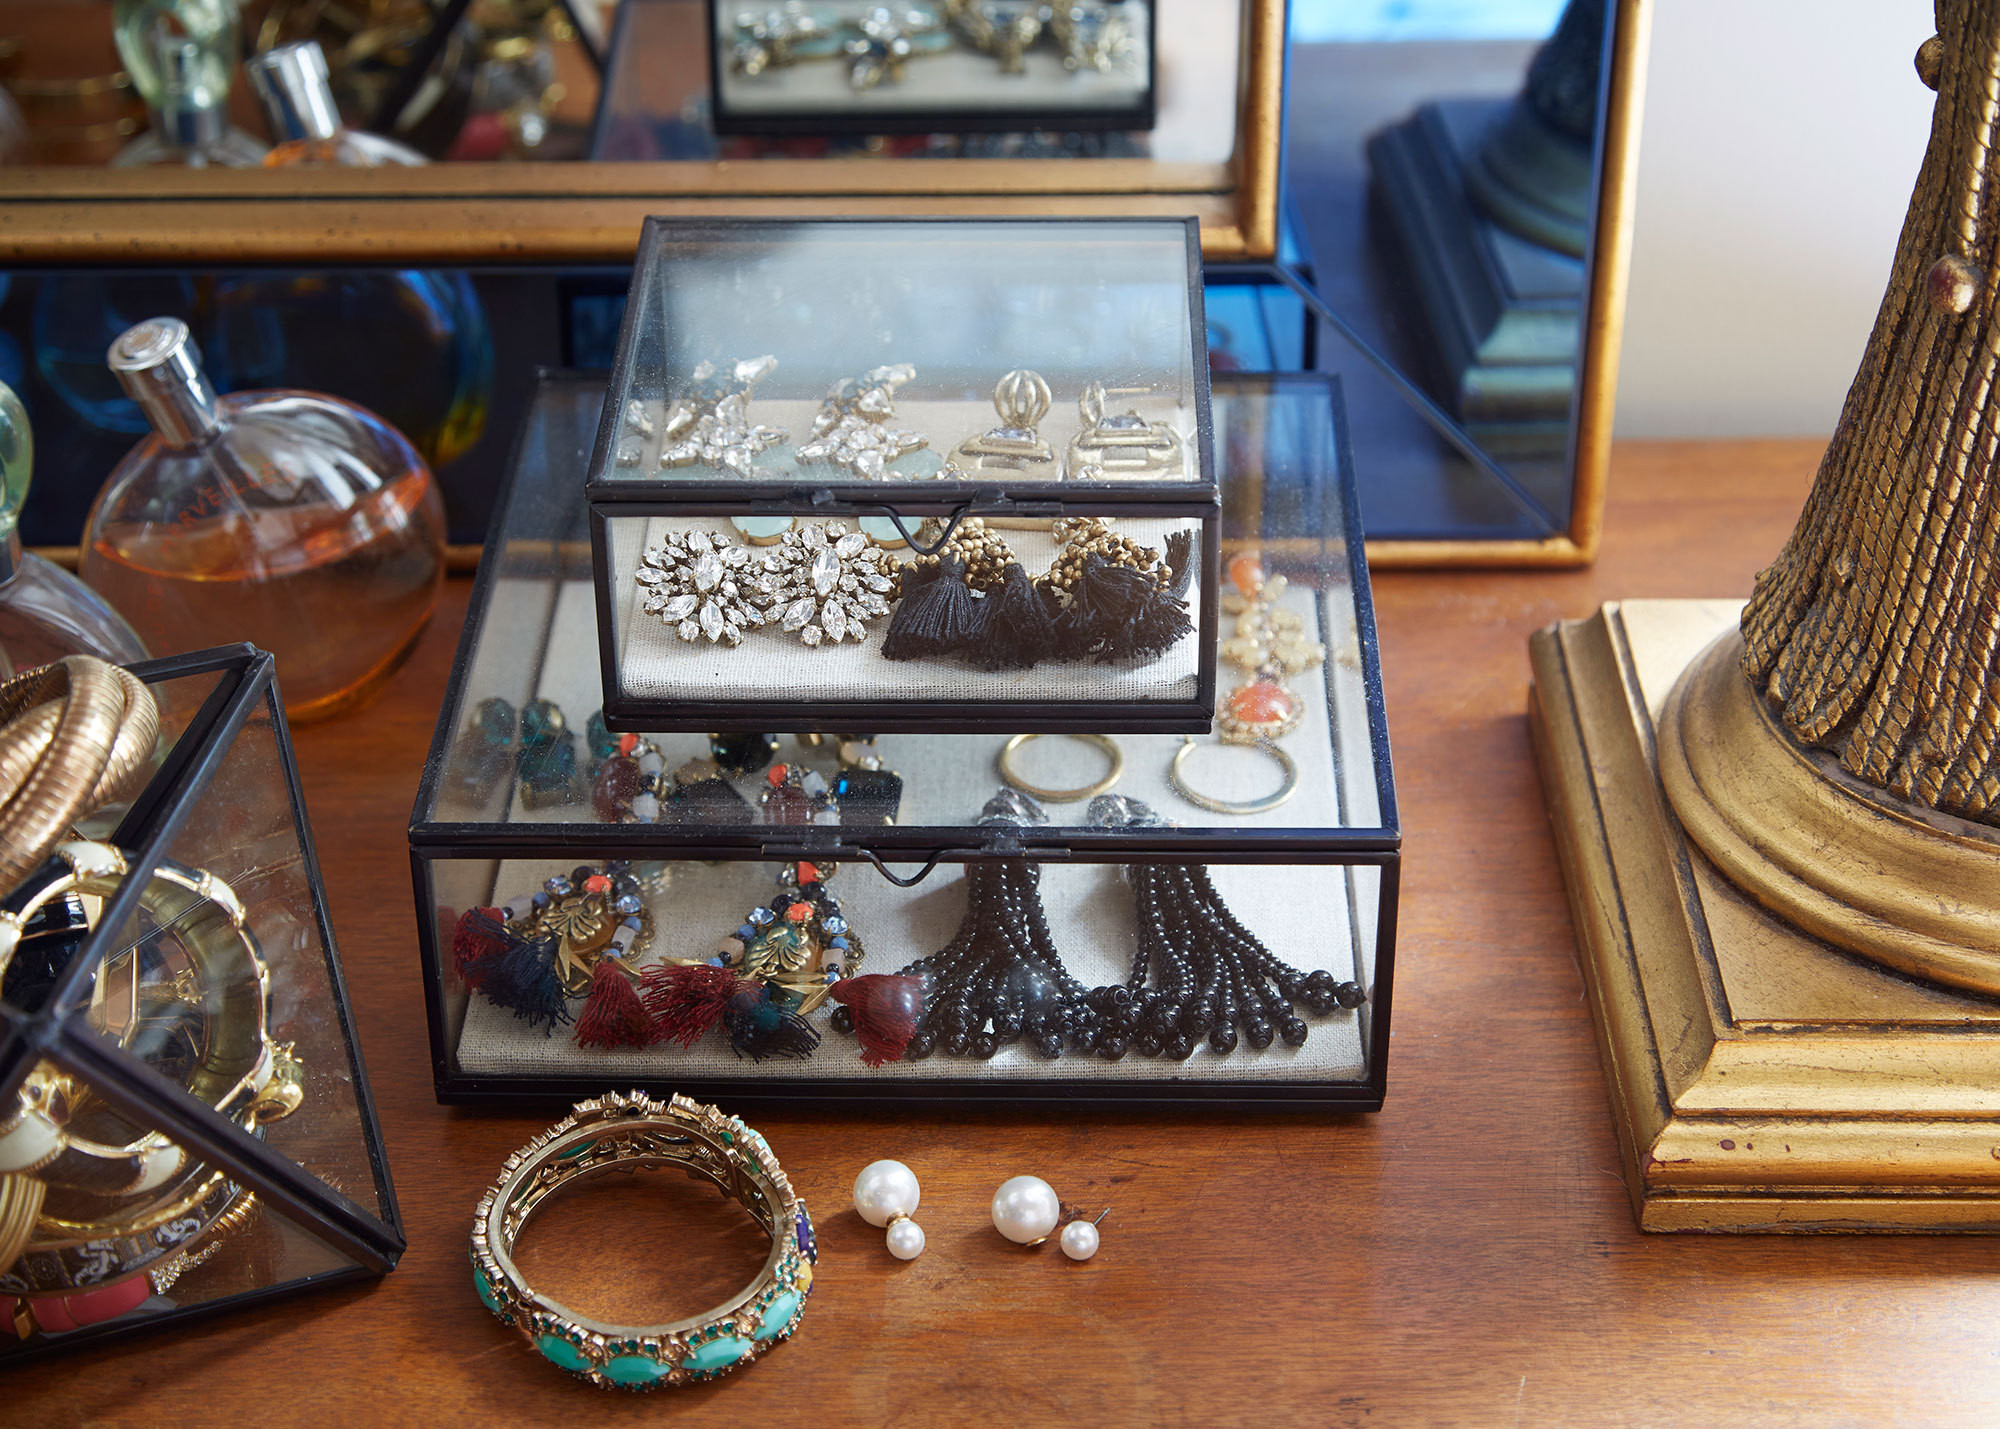 Shadow boxes display a colorful collection of jewelry.